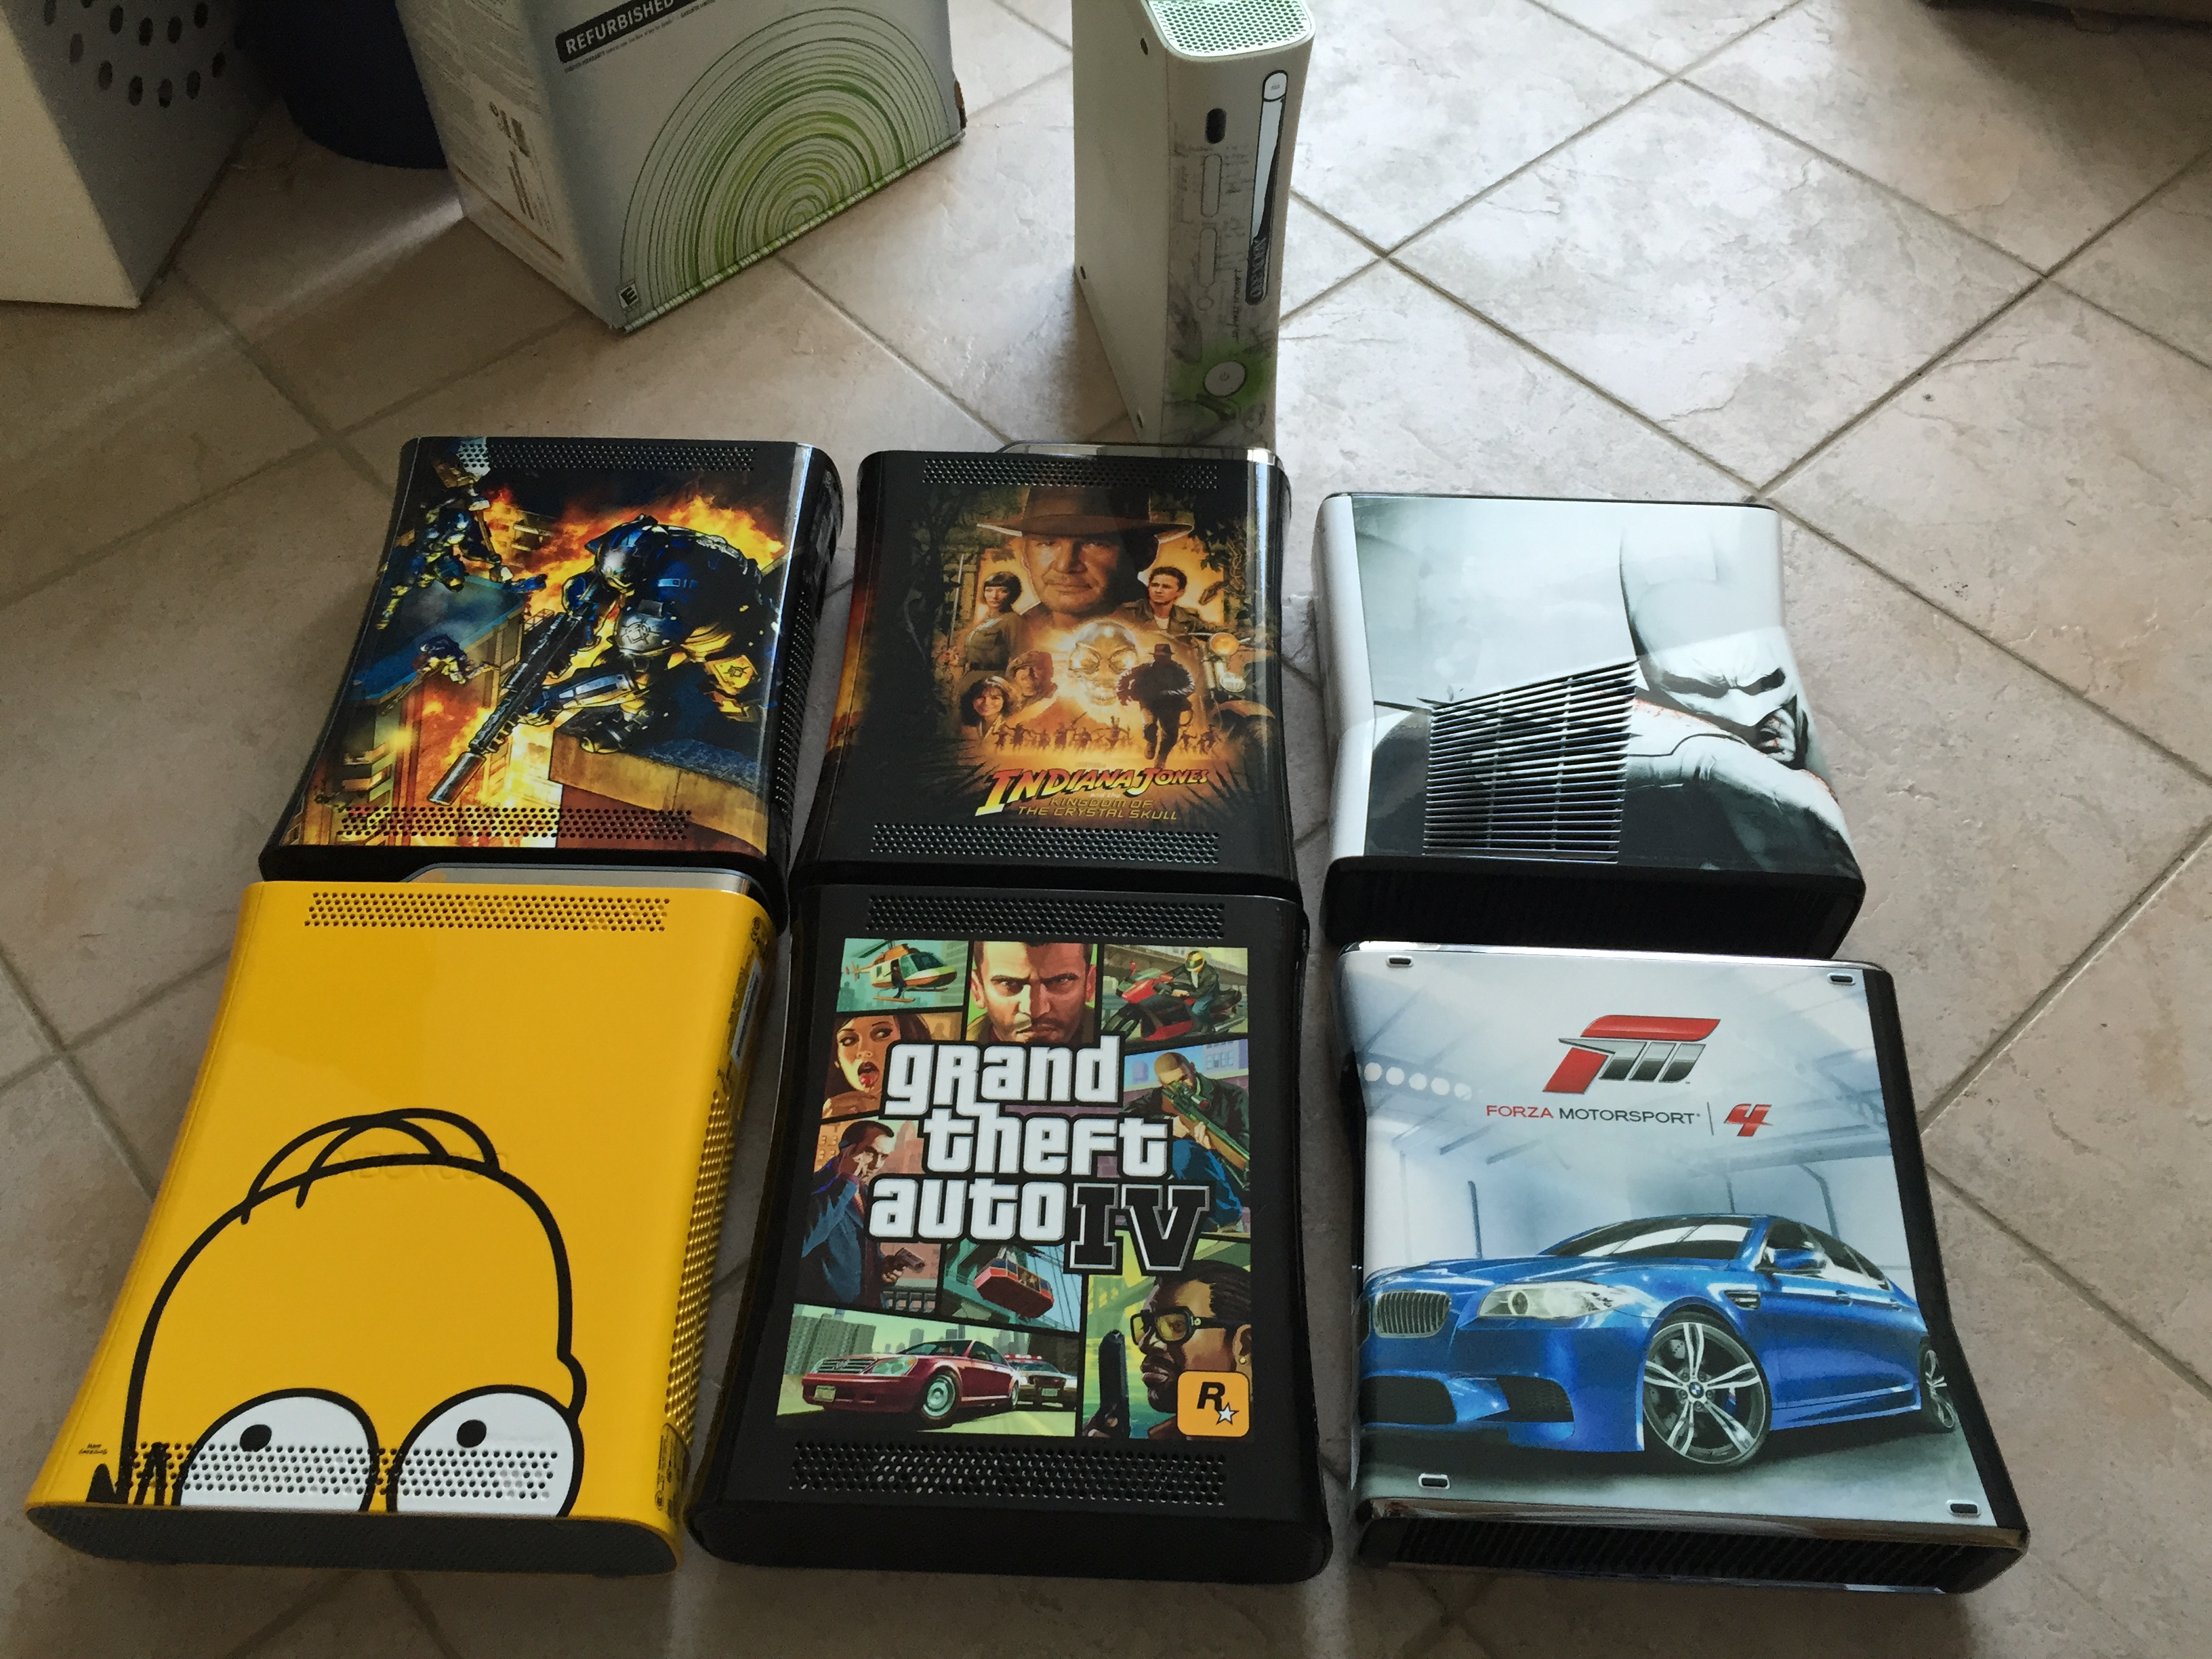 [Vds] Collection 7 Xbox 360 Limited: Simpsons, Indiana Jones, Forza .. 160114110257616658